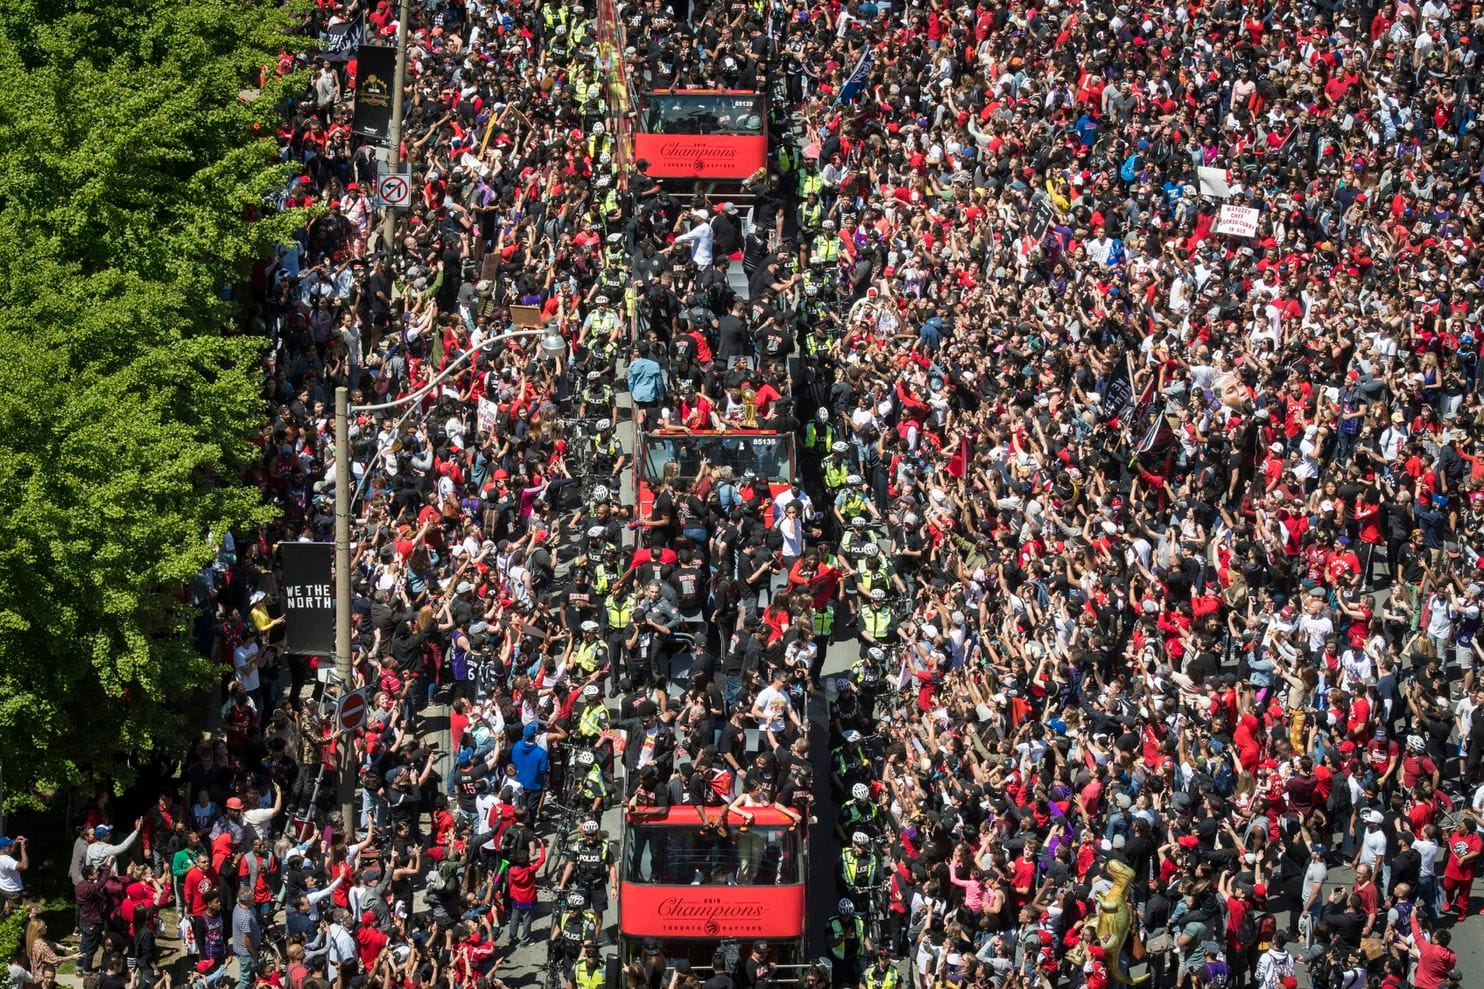 Two seriously injured in Toronto Raptors victory parade: police